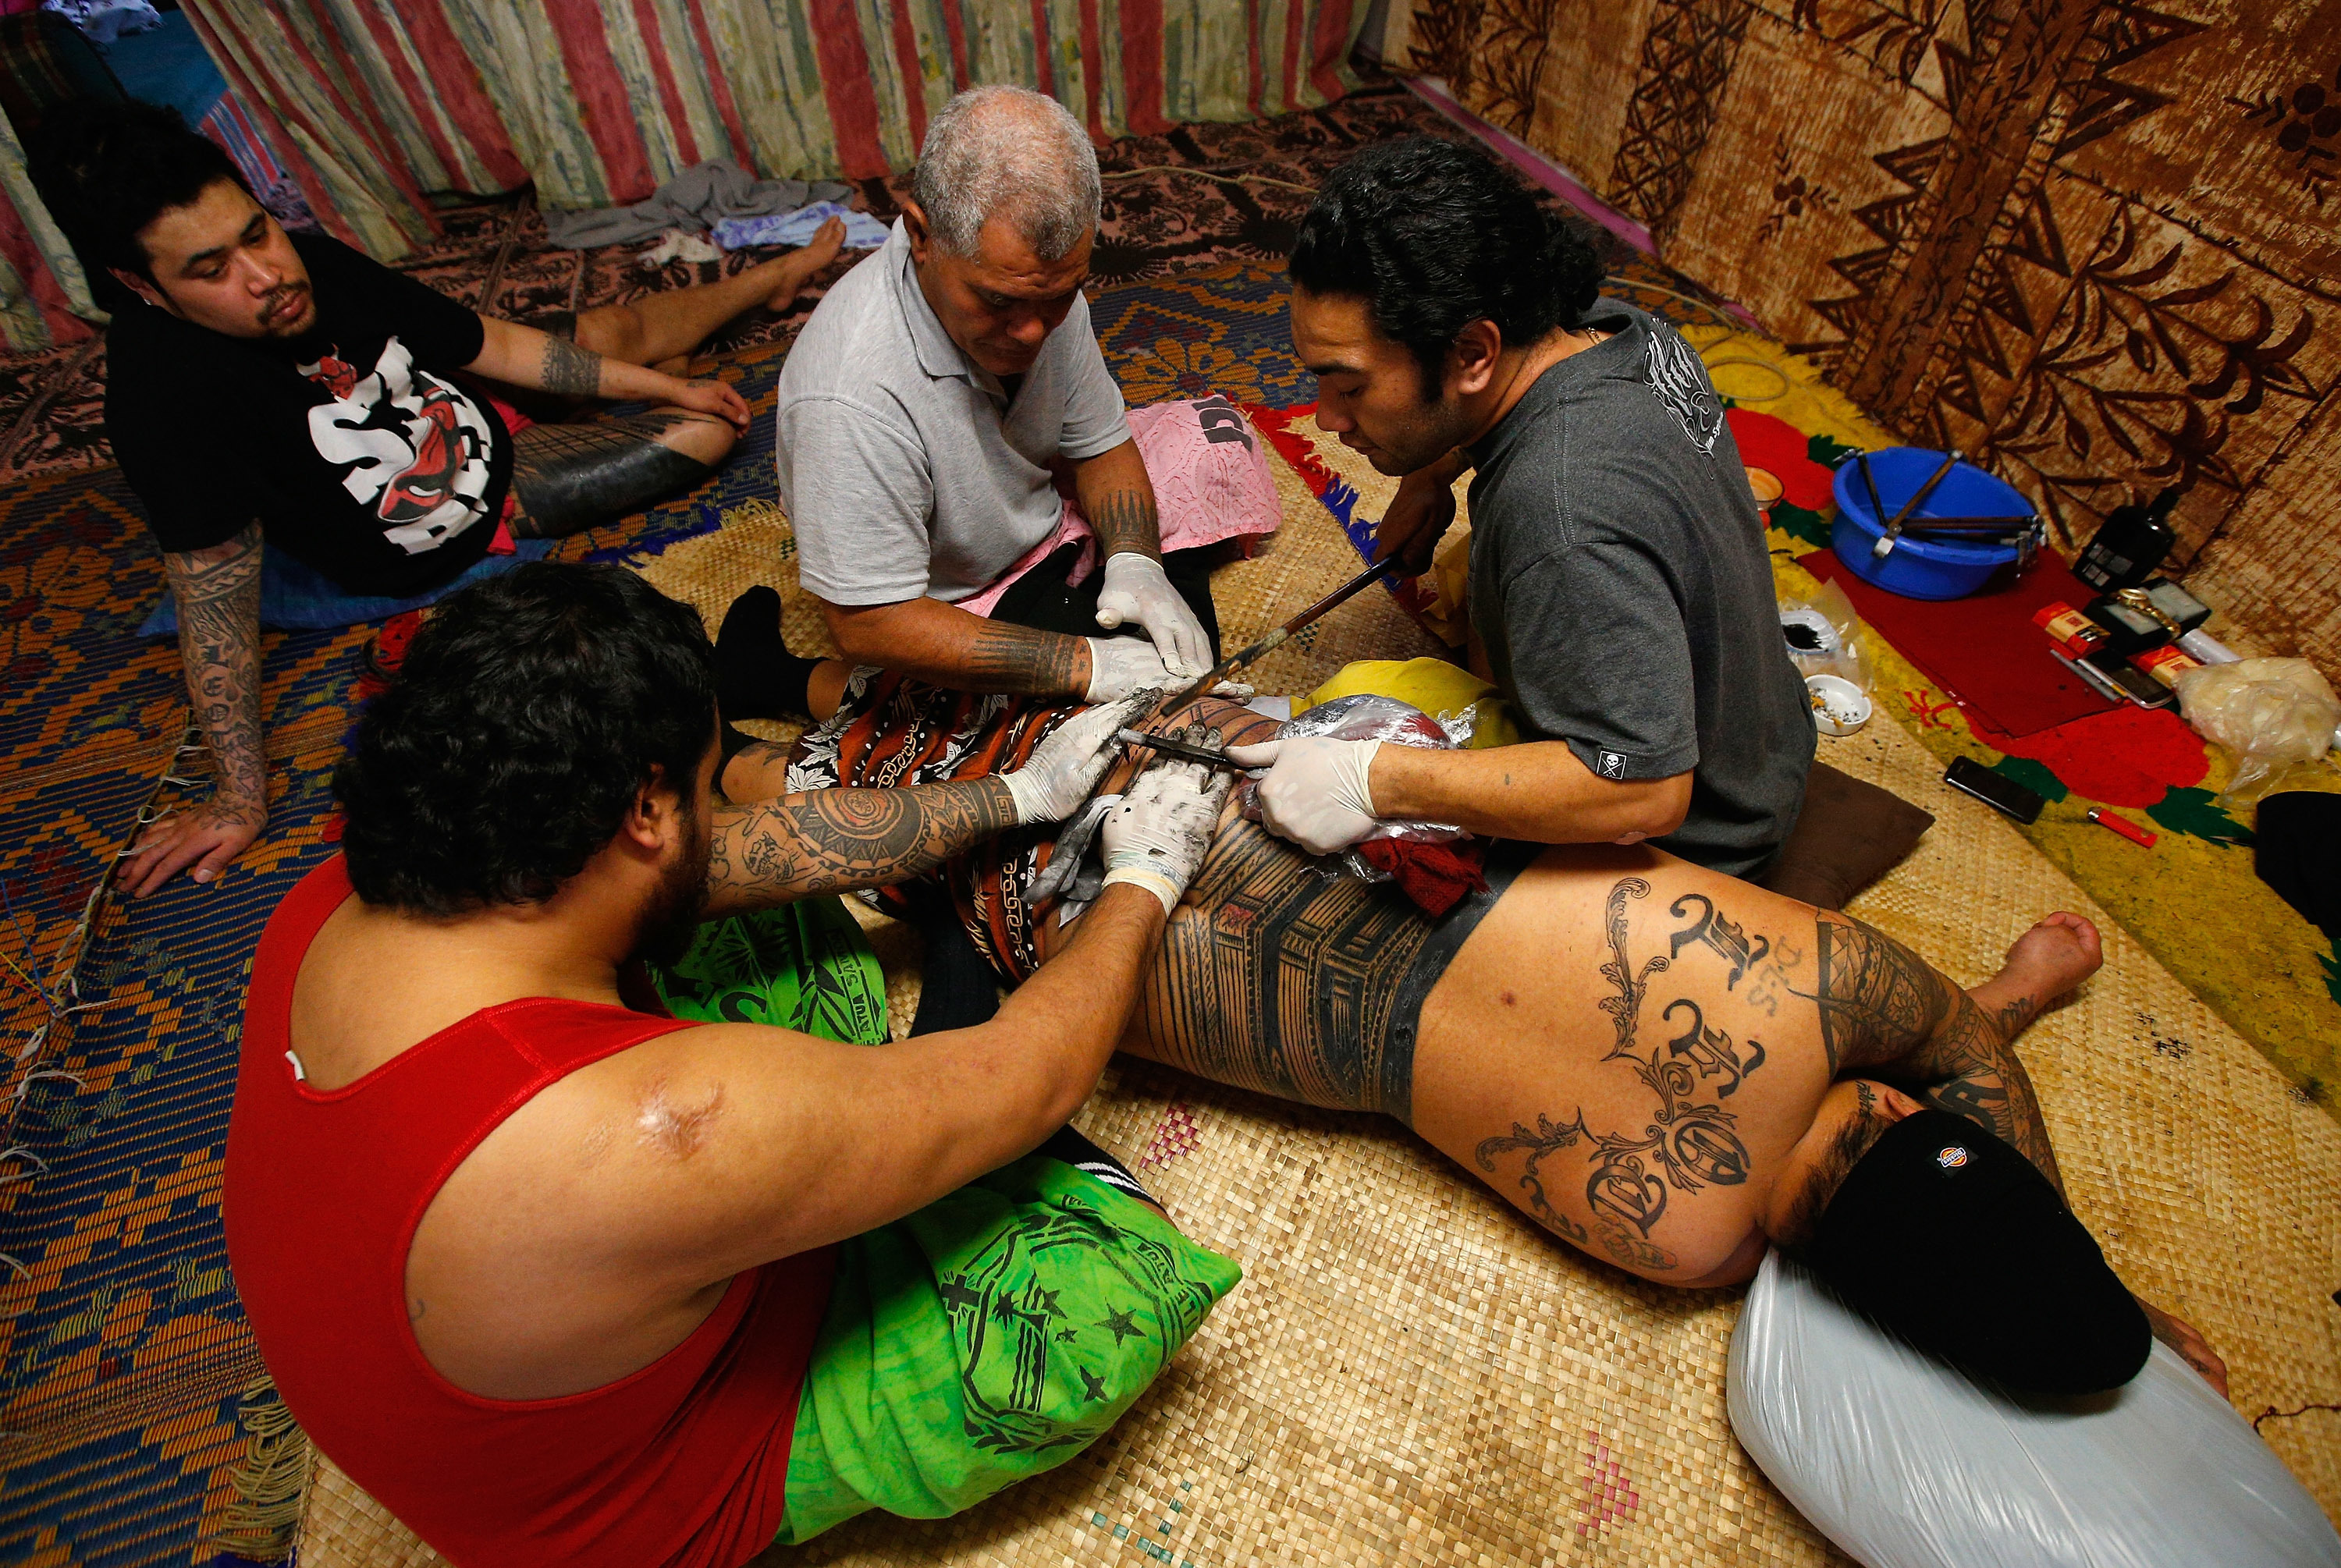 A Dermatologist Busts The Myths And Misconceptions About Tattoos